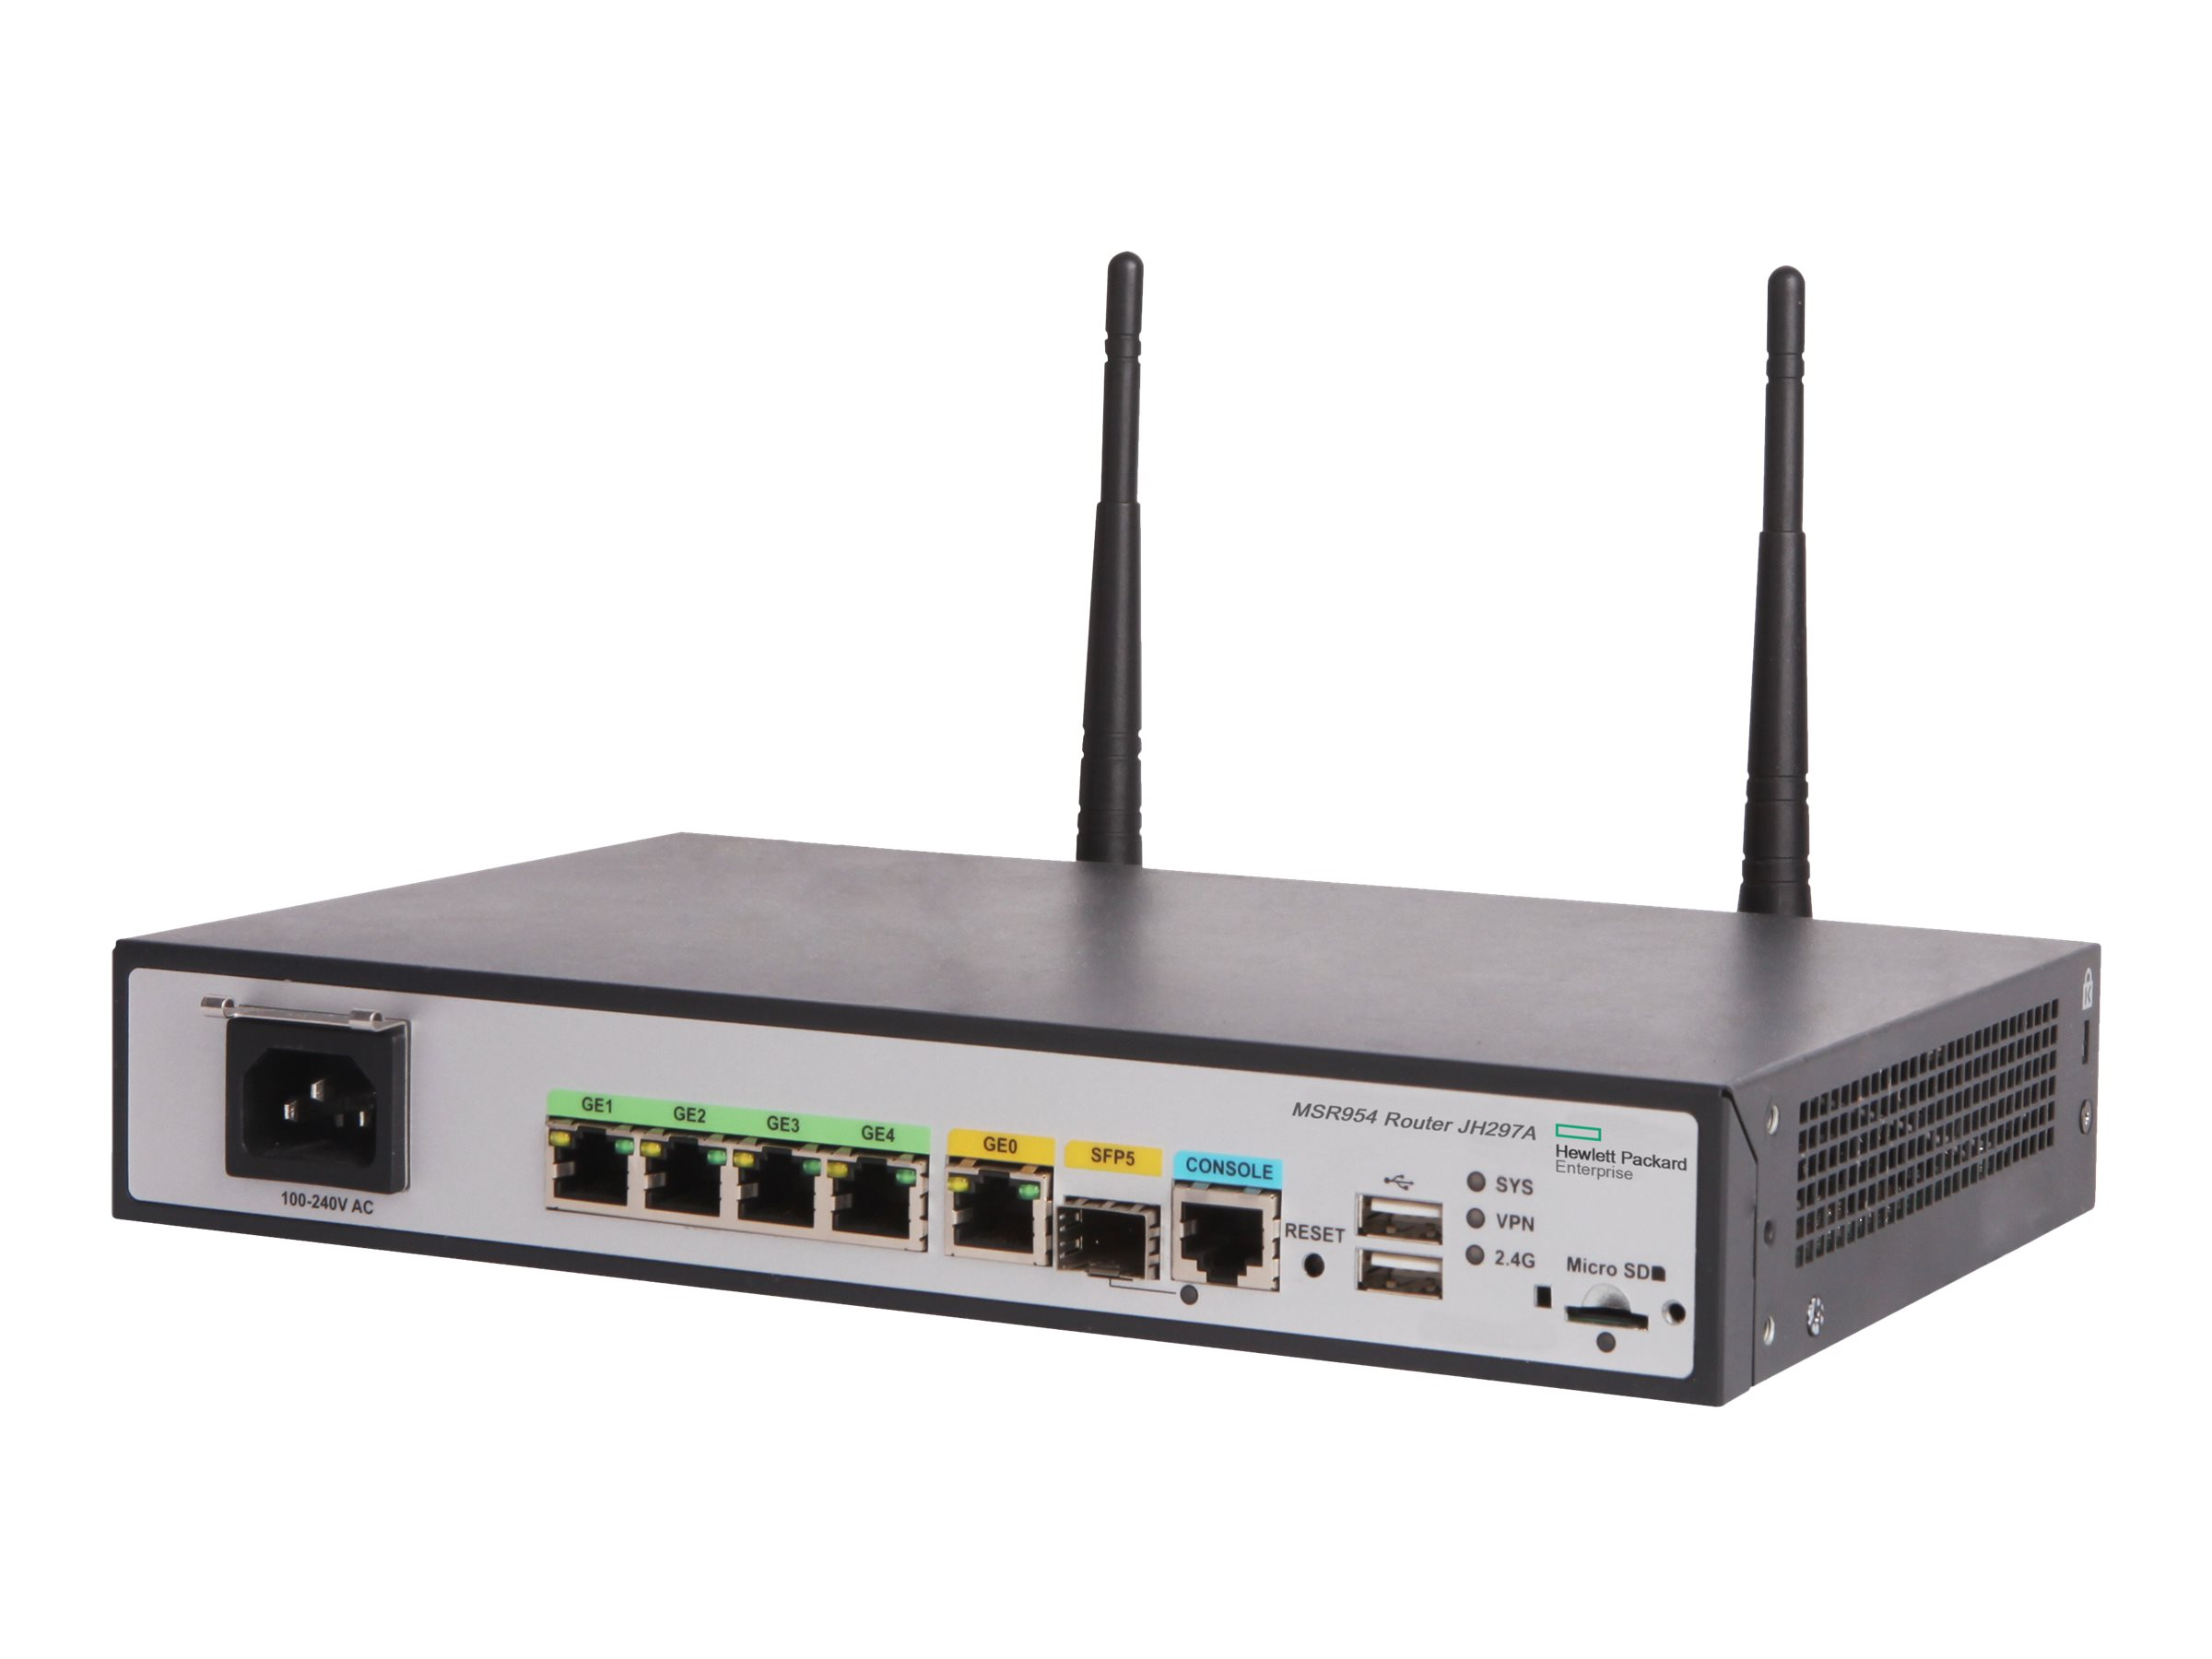 HPE MSR954-W (WW) - Wireless Router - 4-Port-Switch - GigE - 802.11b/g/n - 2,4 GHz